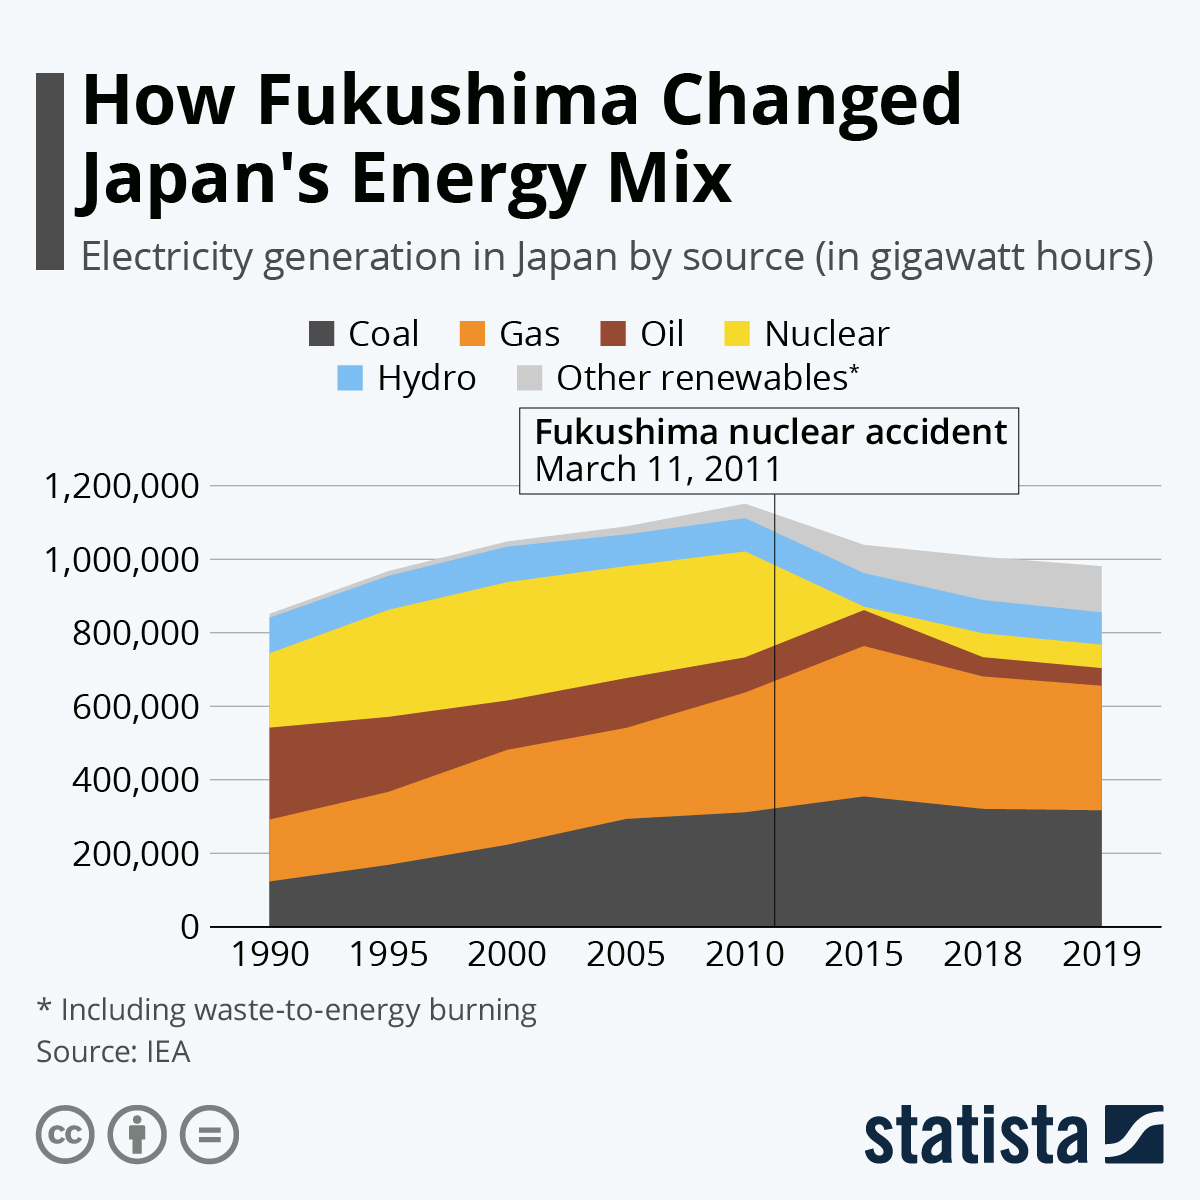 fukushima-electricity-generated-in-japan-by-source-18679